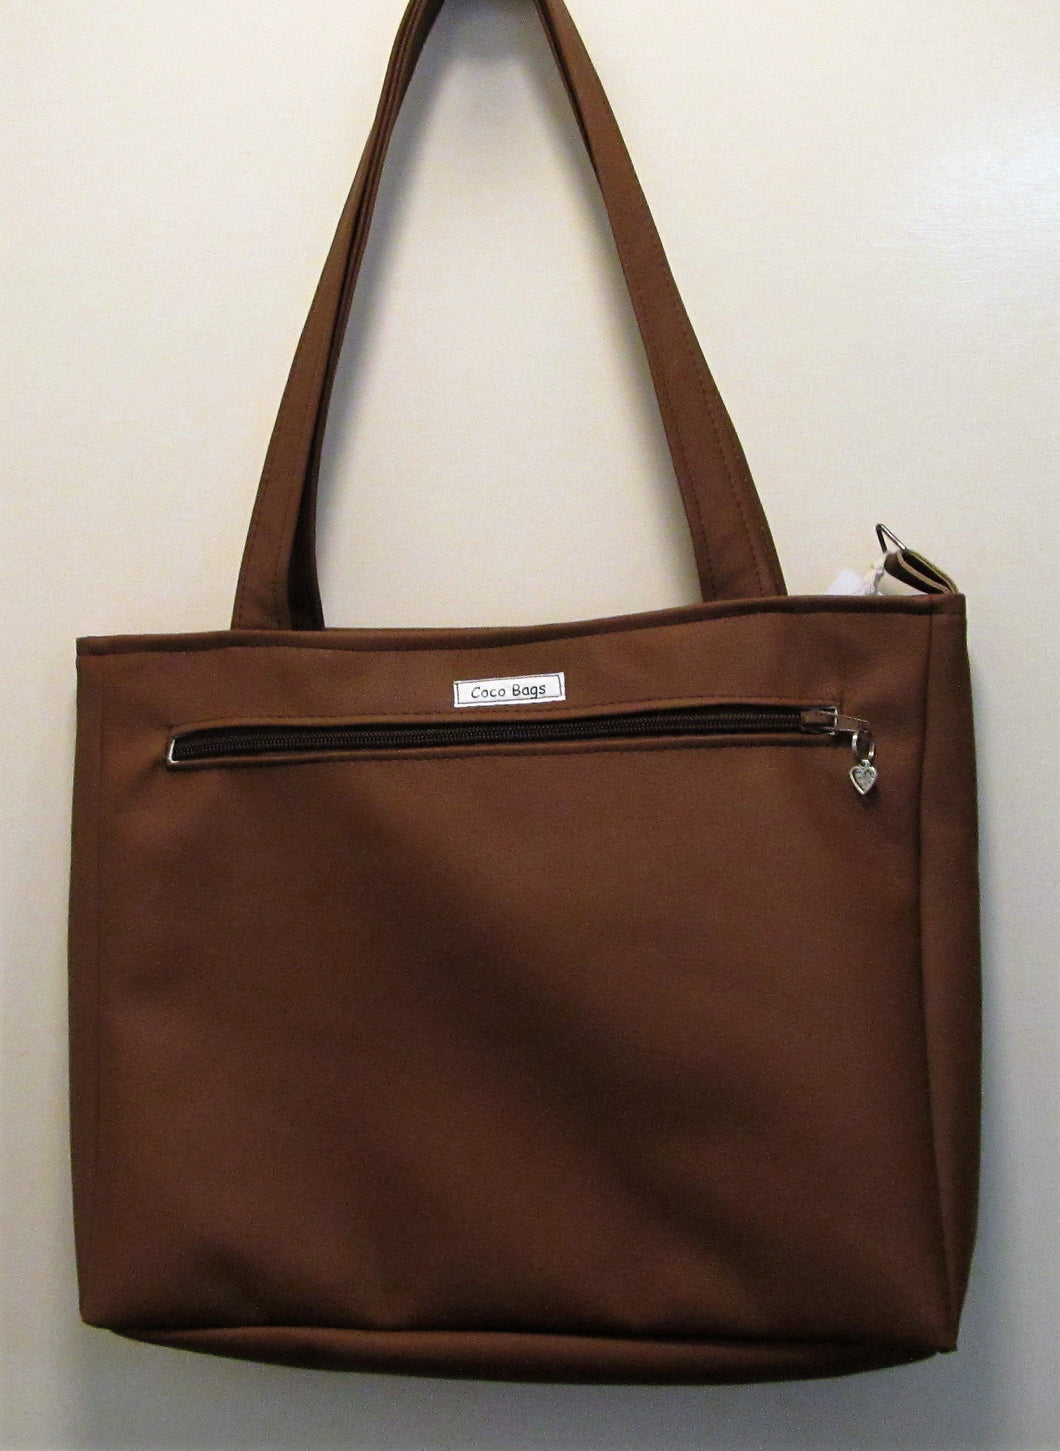 Beautiful handcrafted faux leather brown handbag